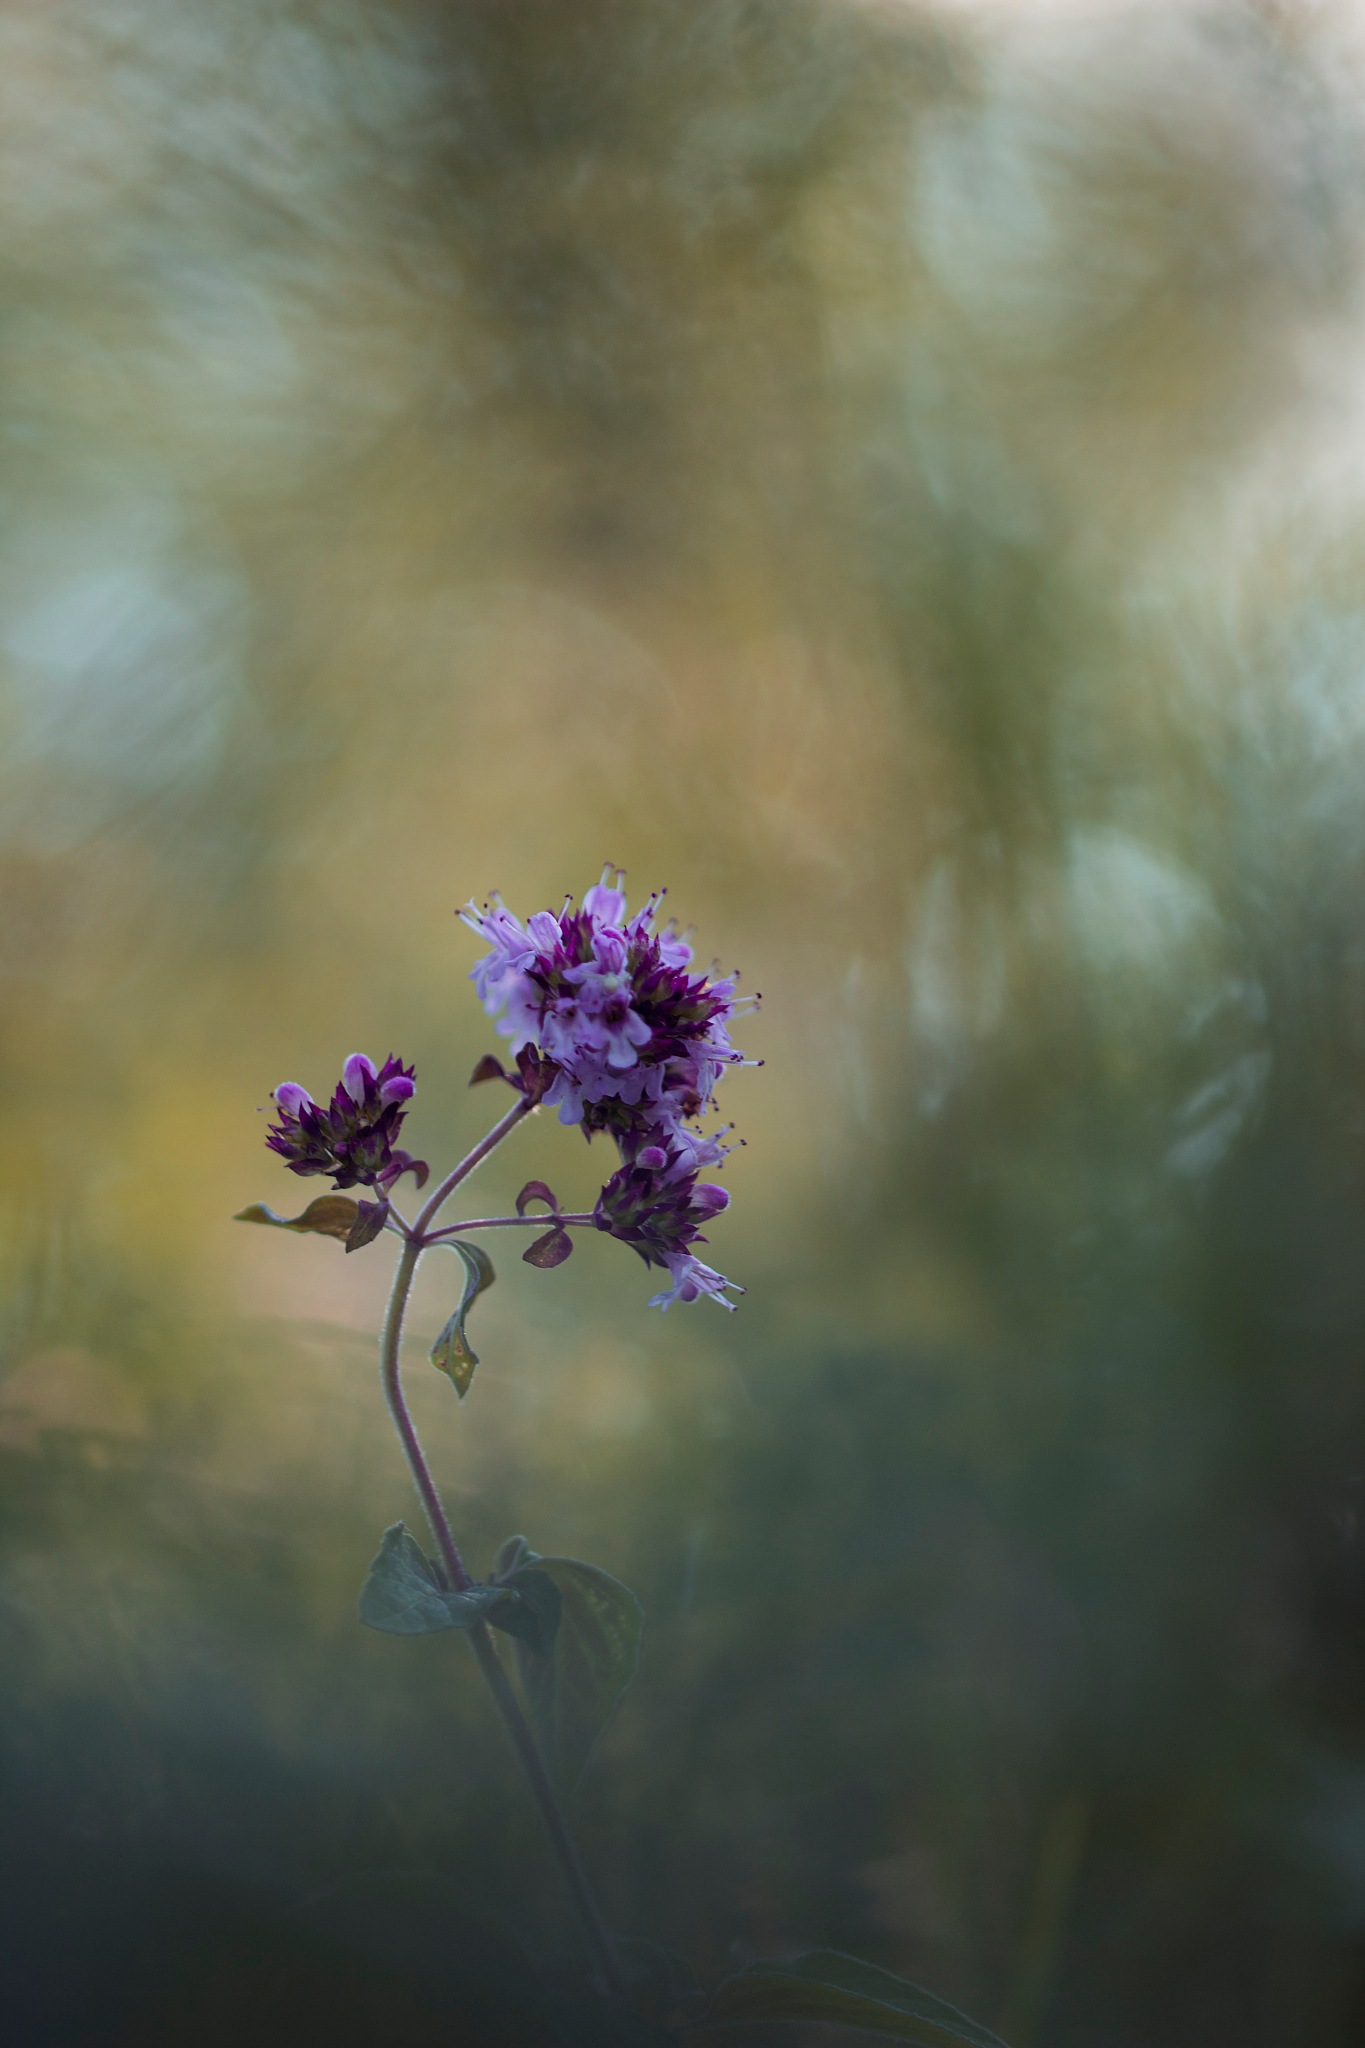 Flowers by Yves Droeven